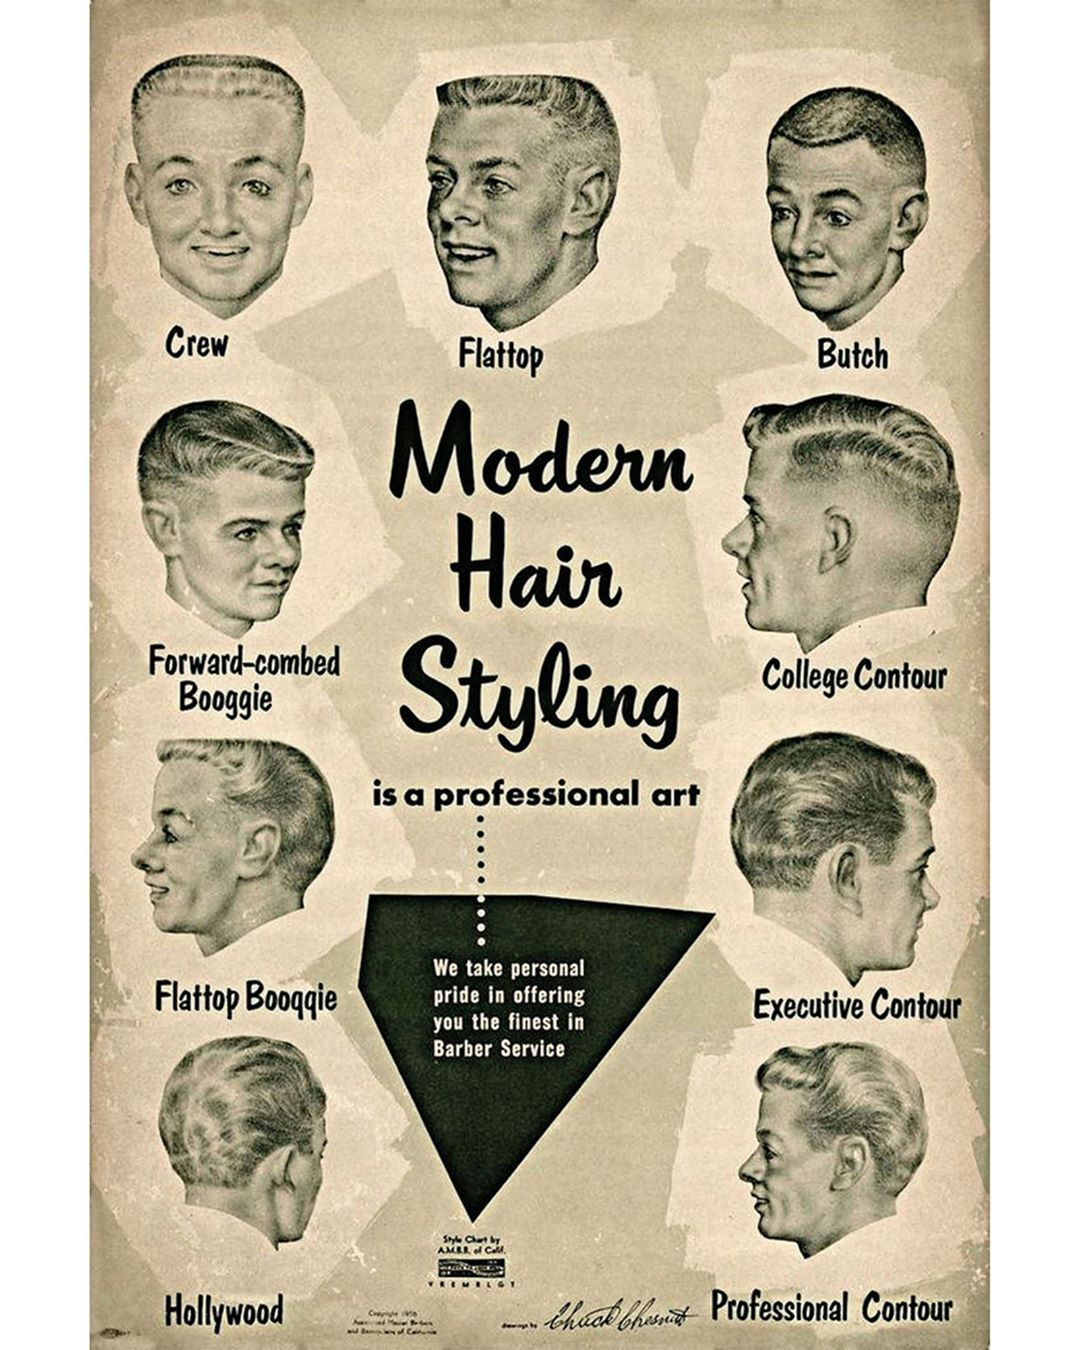 Suavecito Oil Based Pomade Modern Hairstyles Mid Hairstyles 1950s Mens Hairstyles